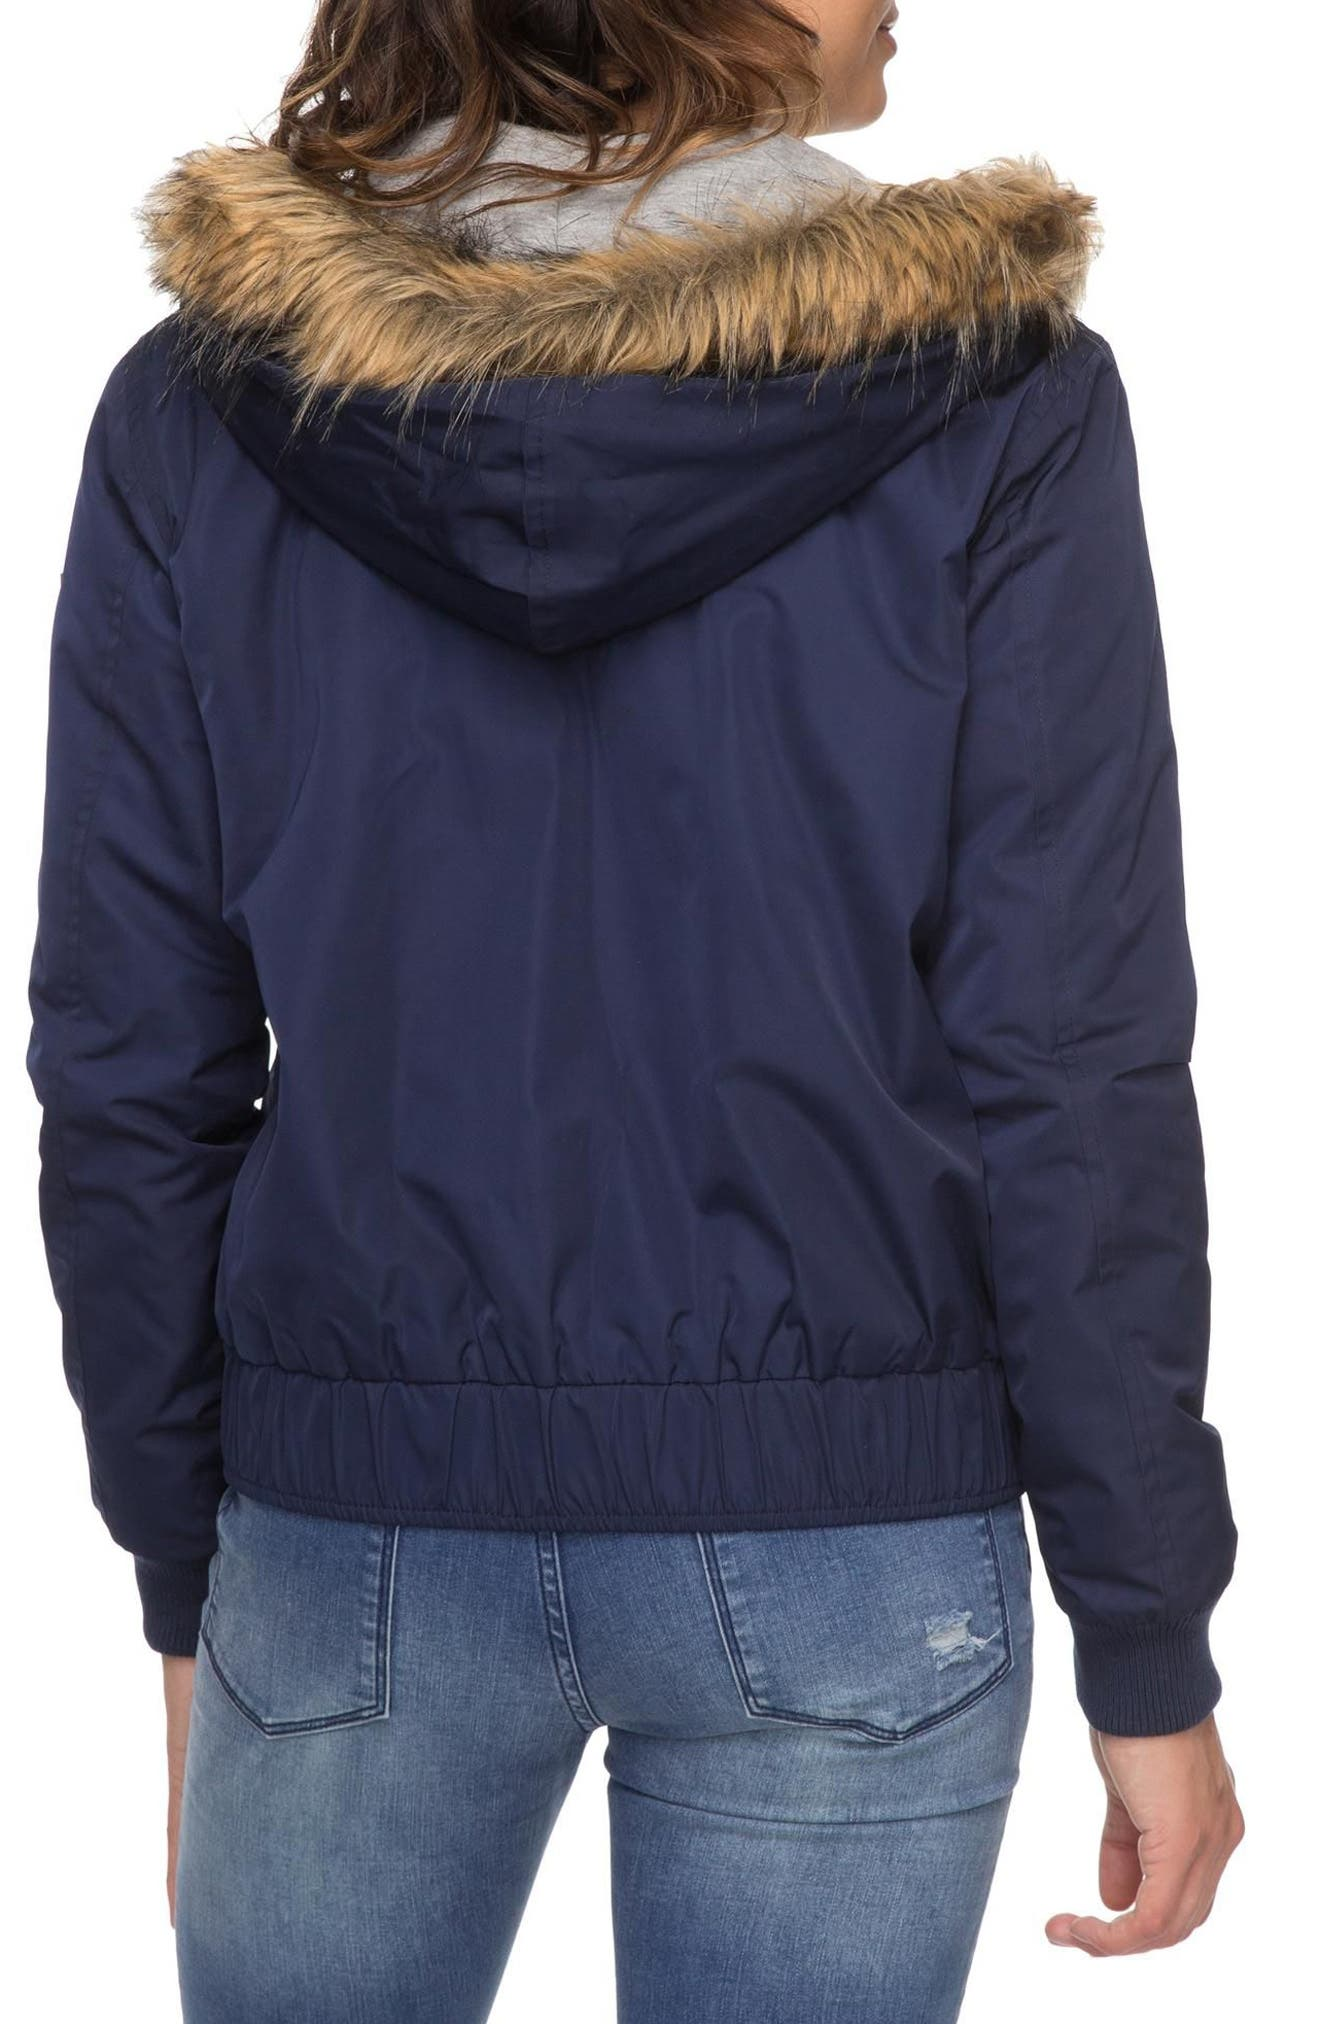 Oh Reely Faux Fur Bomber Jacket,                             Alternate thumbnail 4, color,                             Dress Blues